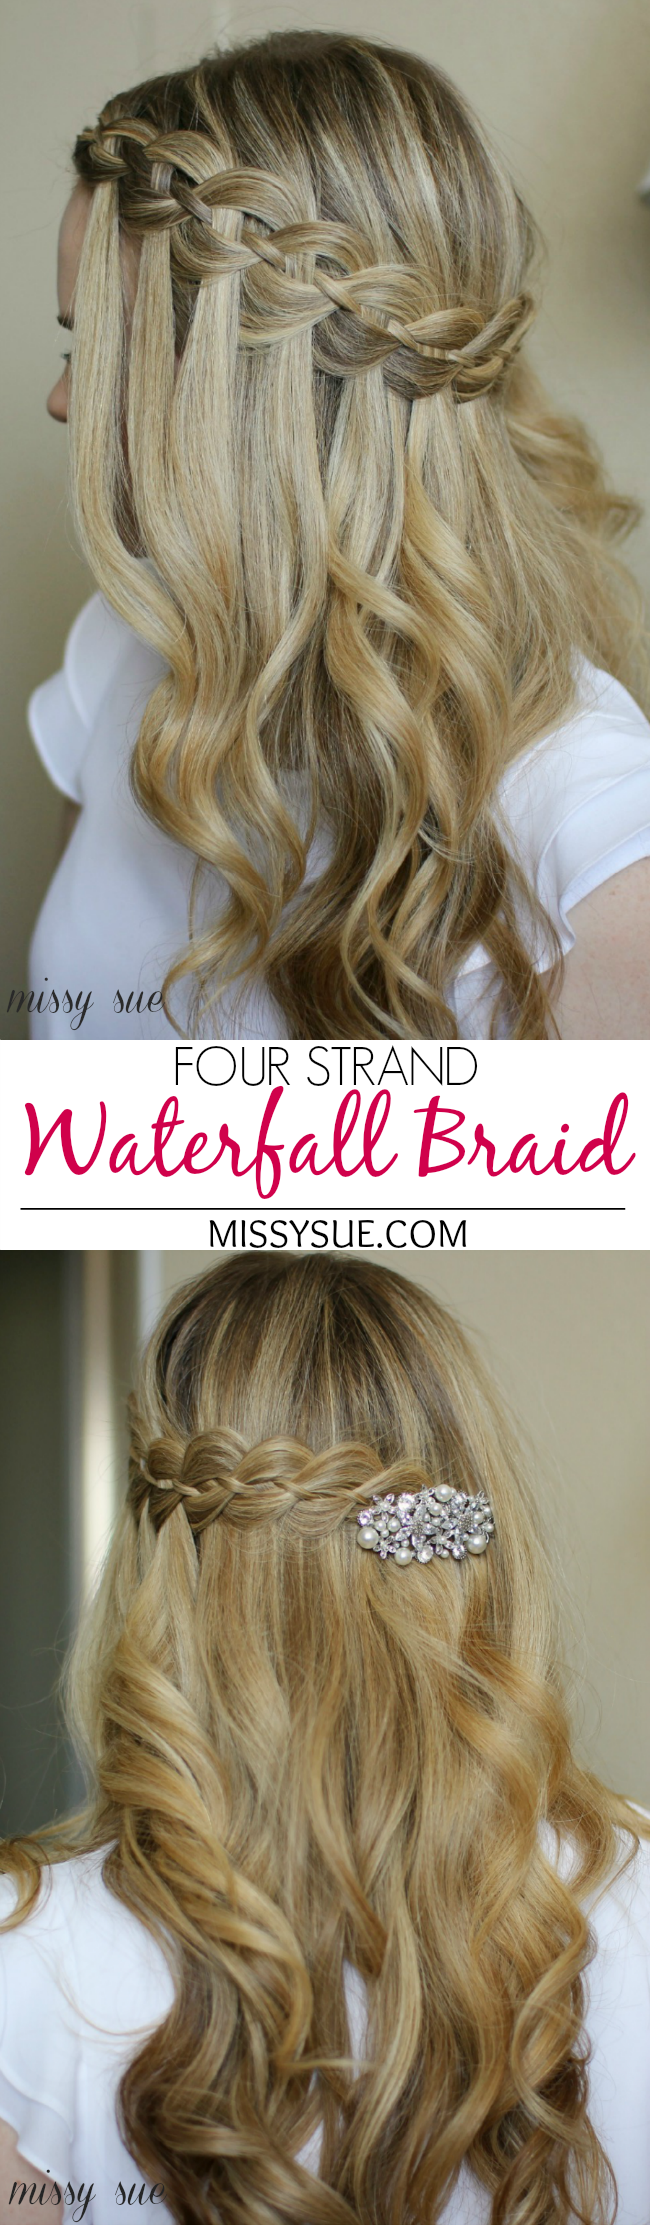 four-strand-waterfall-braid-missysueblog-2